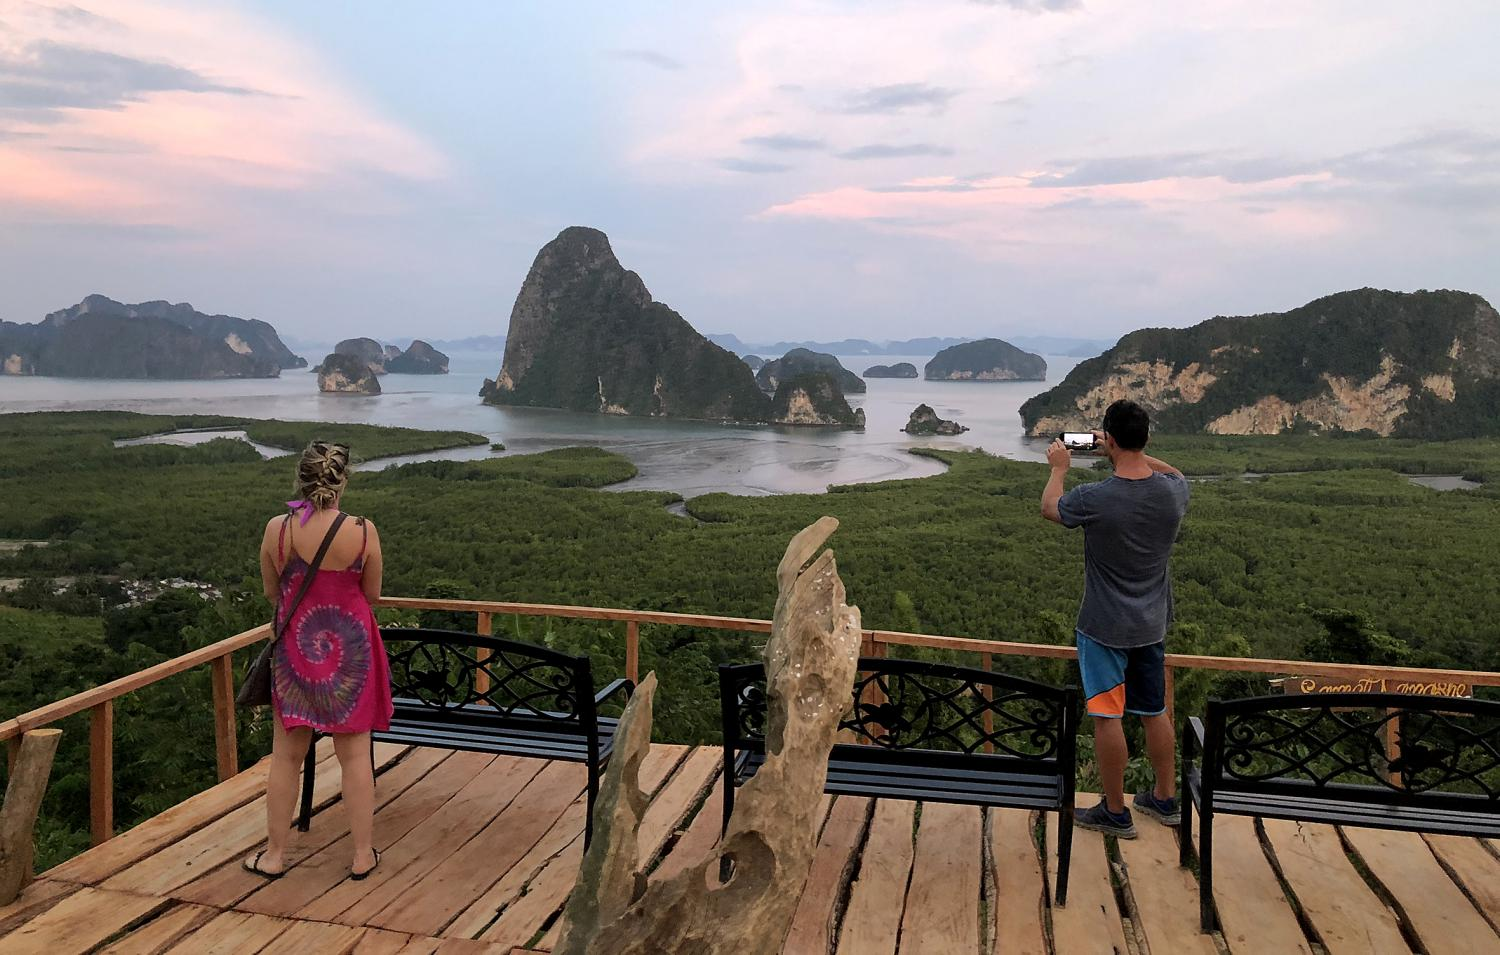 Foreign tourists take photos at the Samed Nang Chee viewpoint in Phangnga province. The Thai Hotels Association has asked the government to extend tourism stimulus benefits to expatriates in Thailand. (Photo by Sarot Meksophawan­nakul)